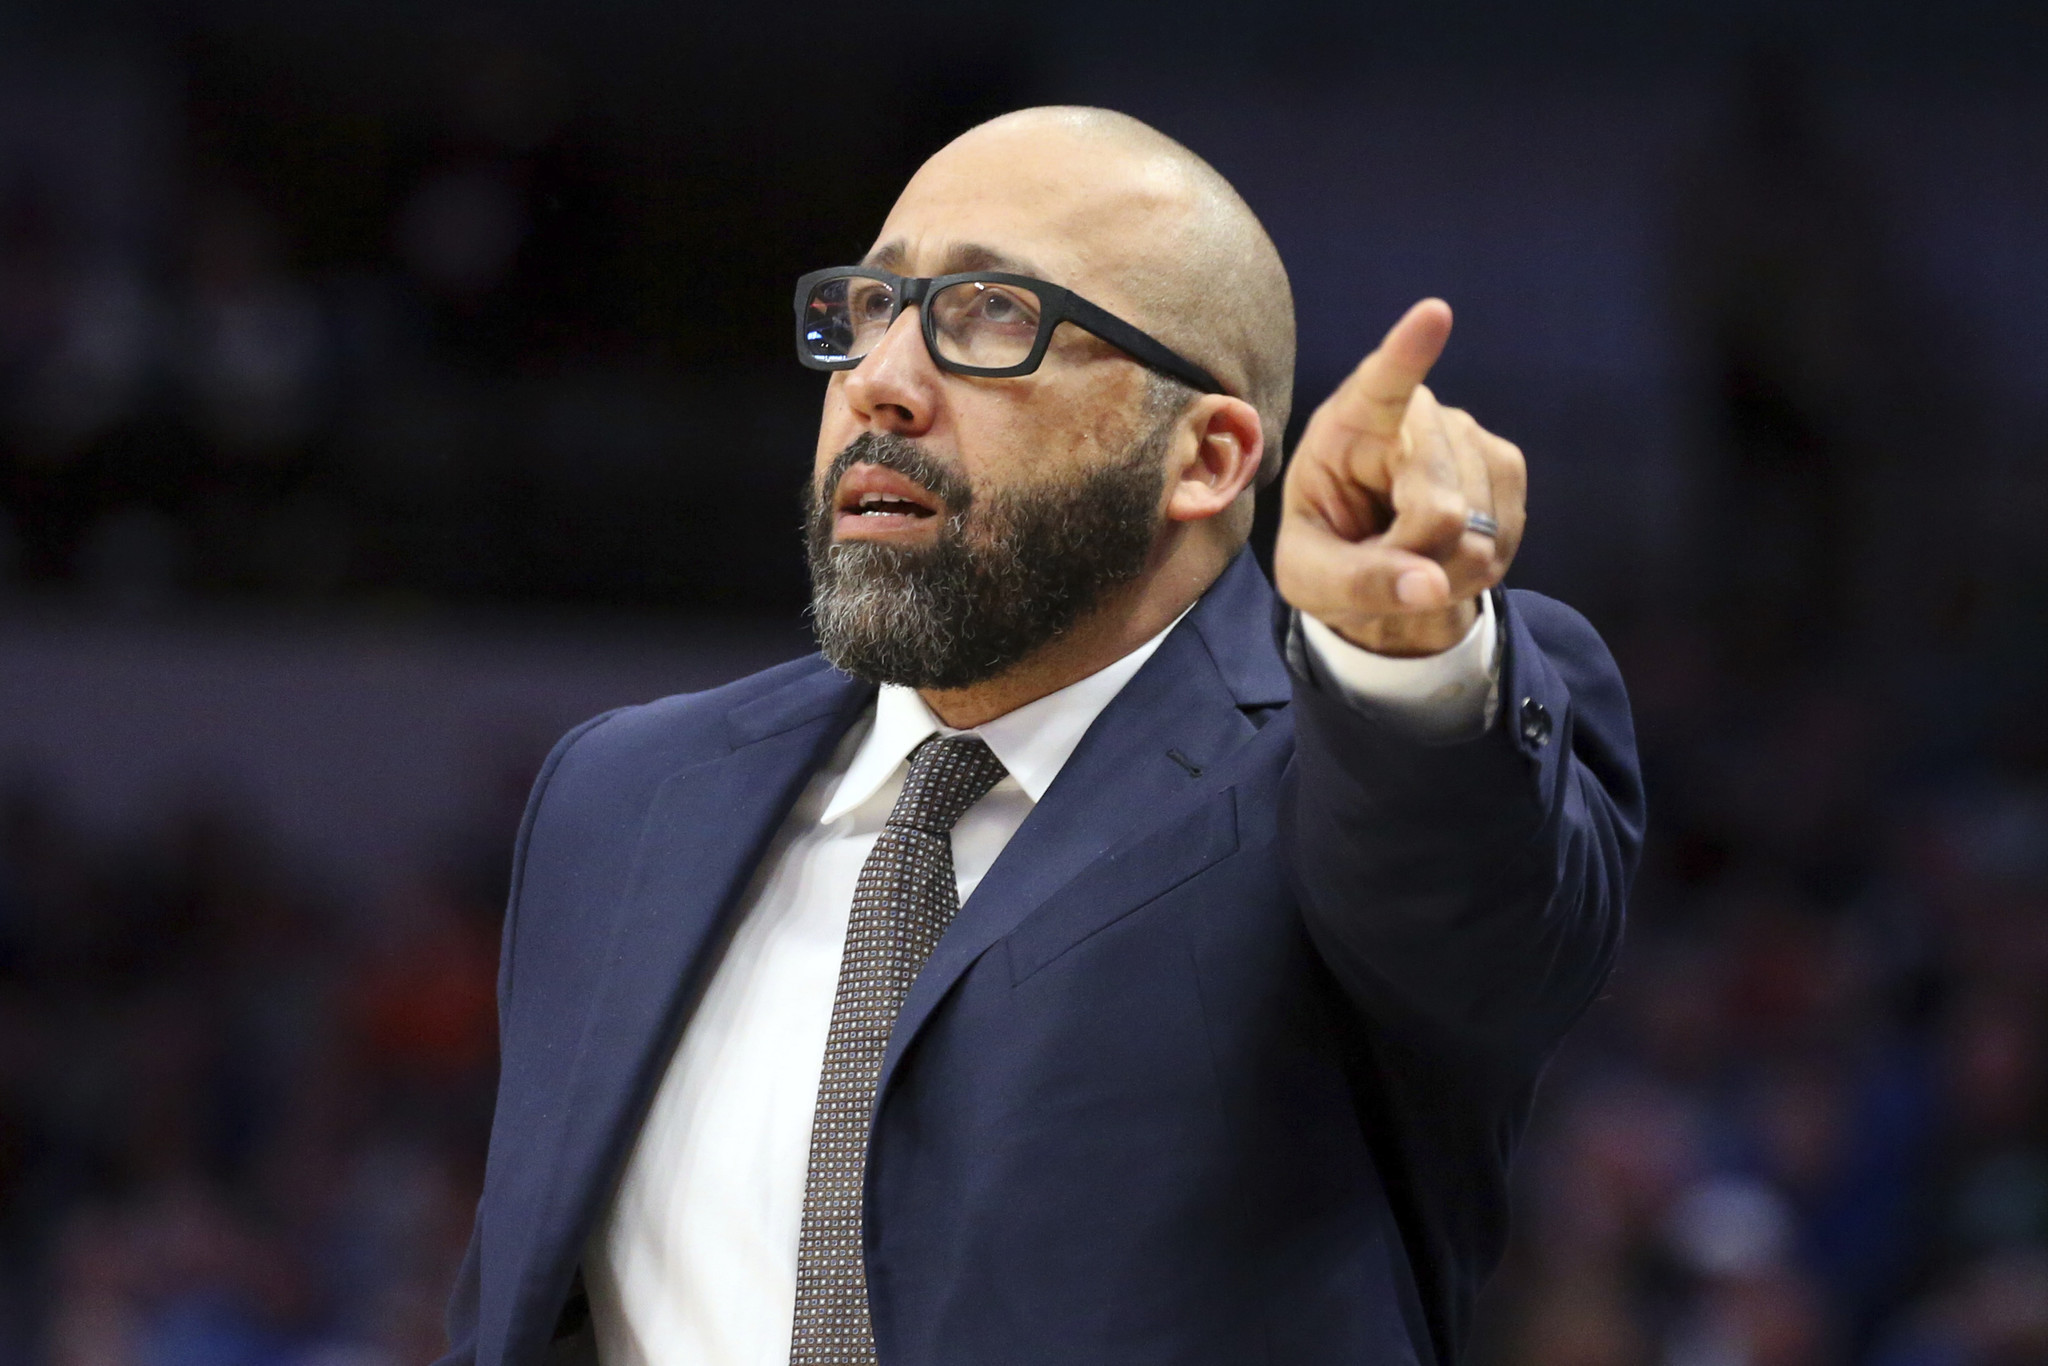 Players back Knicks coach David Fizdale, who is in the crosshairs after front office sends out alarm